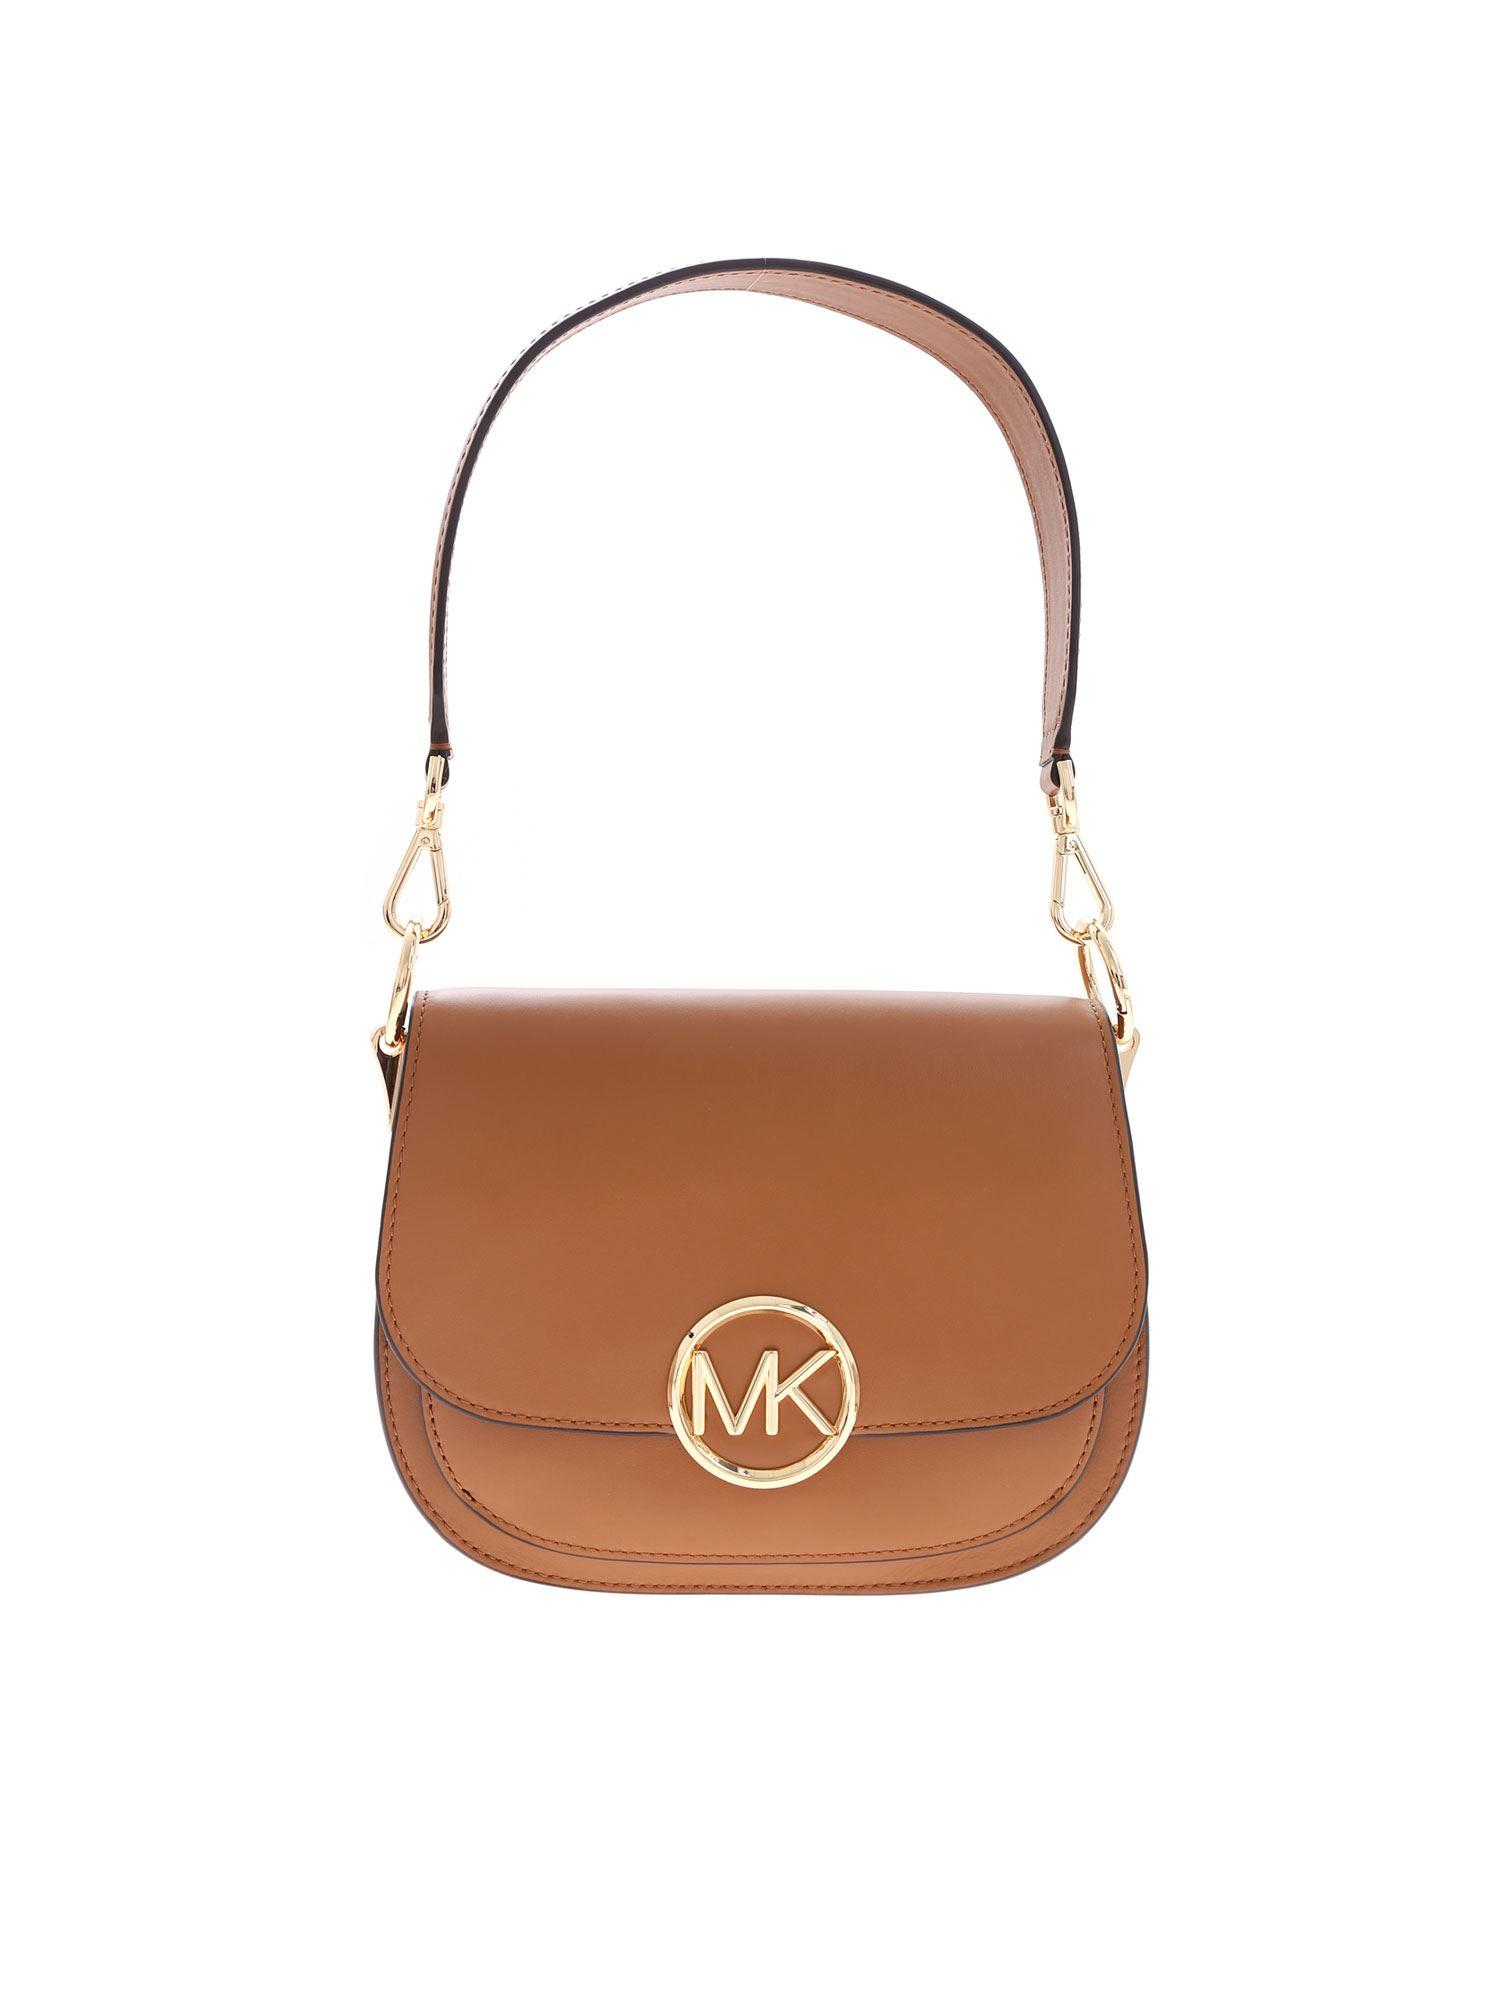 8d9822d686bf Michael Kors Lillie Shoulder Bag In Leather-color in Brown - Lyst